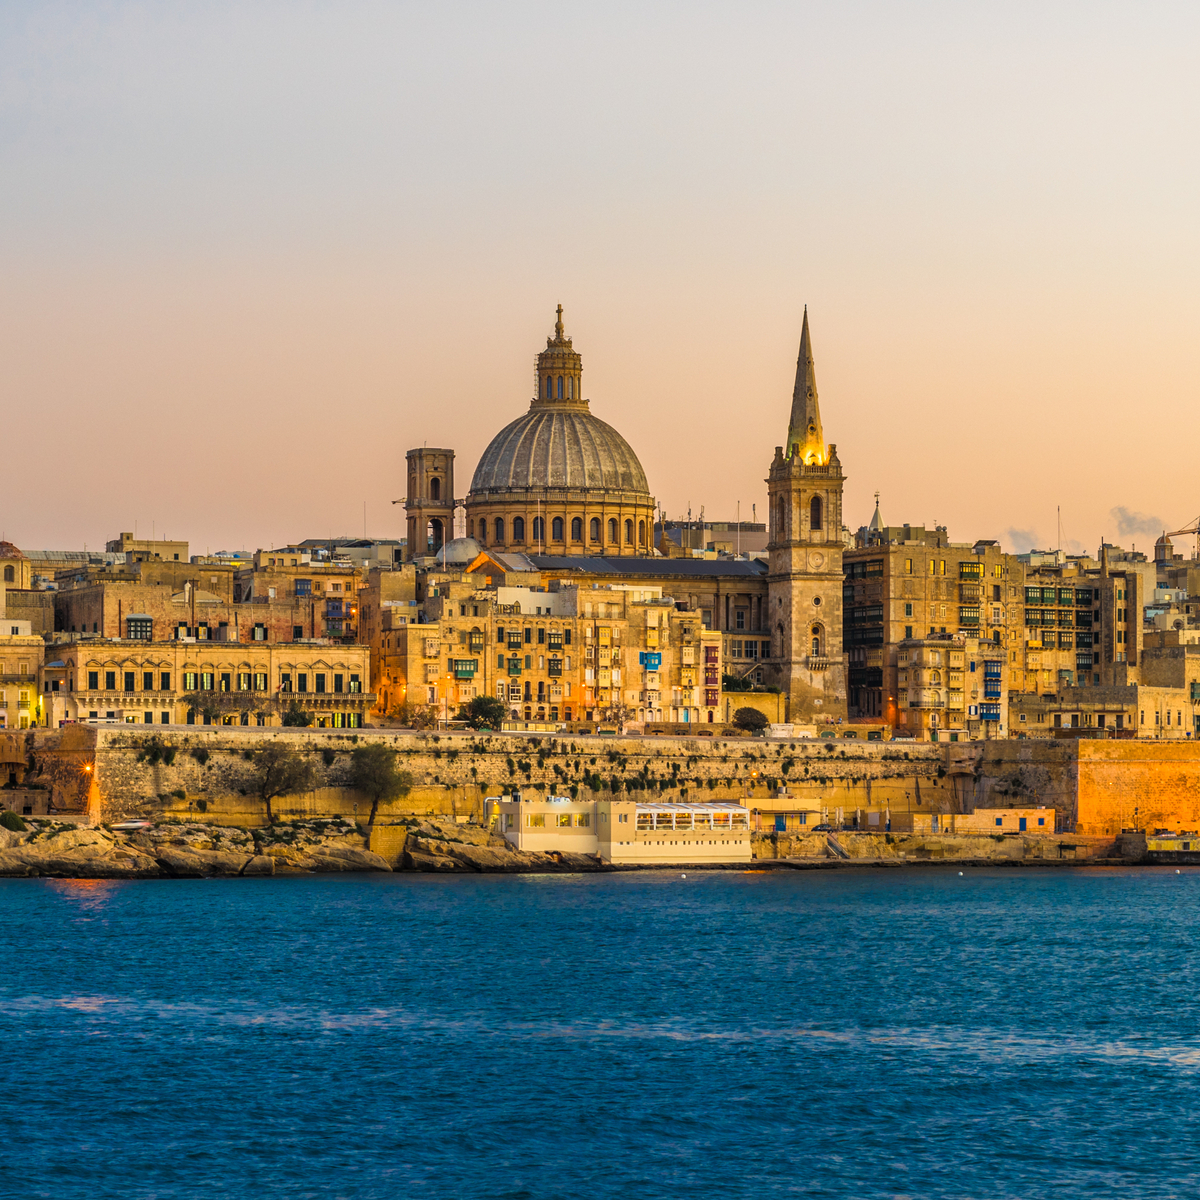 Sunset view of Valletta, the capital of Malta - Jean-Francois de ClermontTonnerre